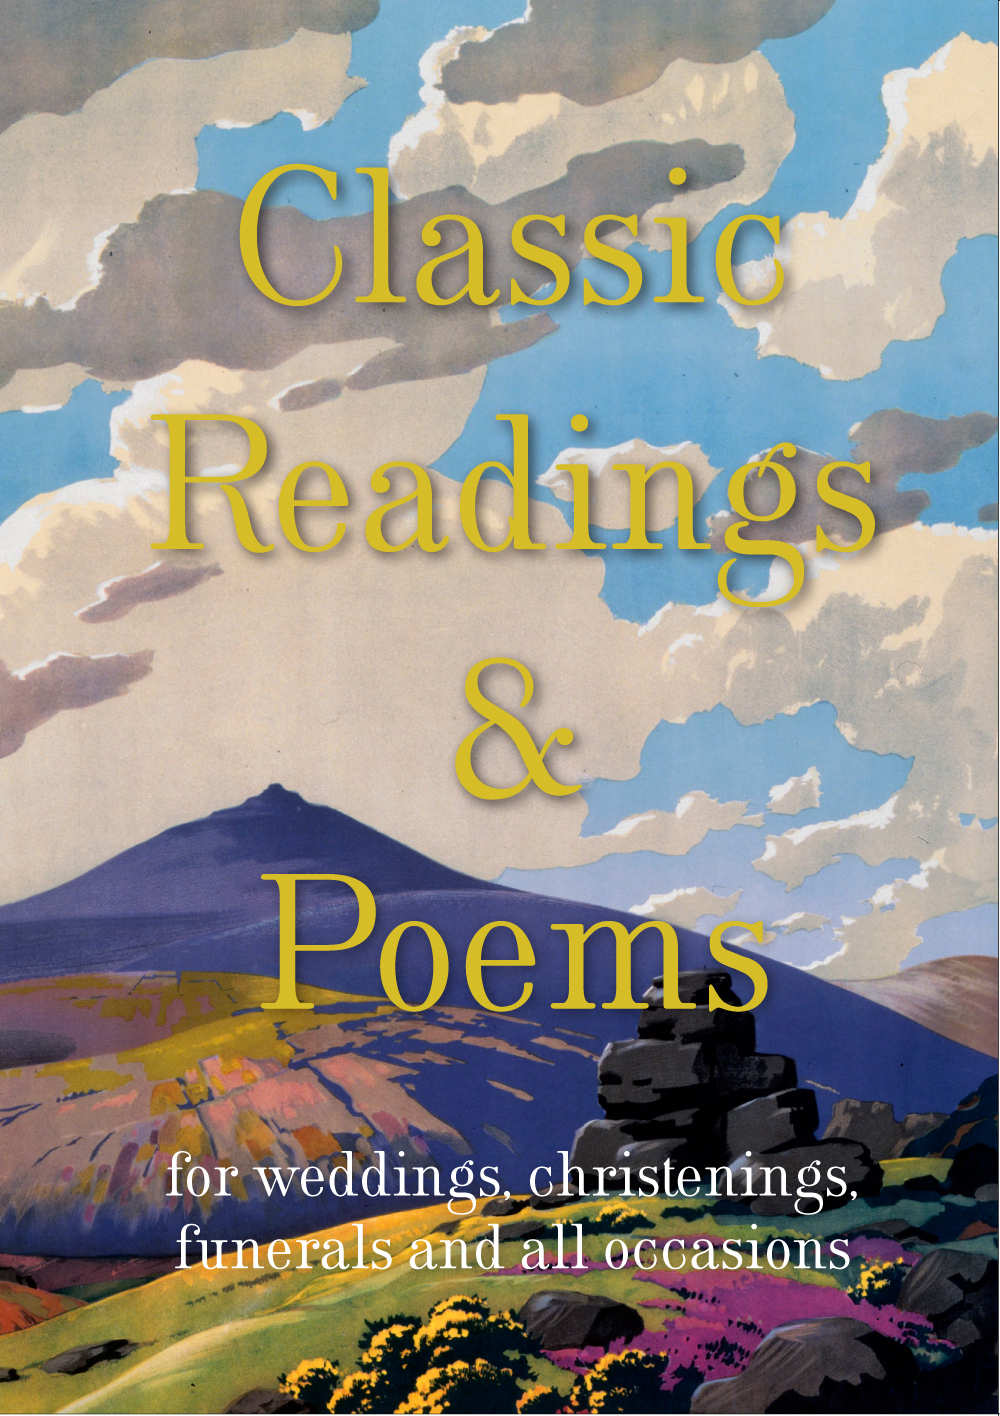 Classic Readings and Poems